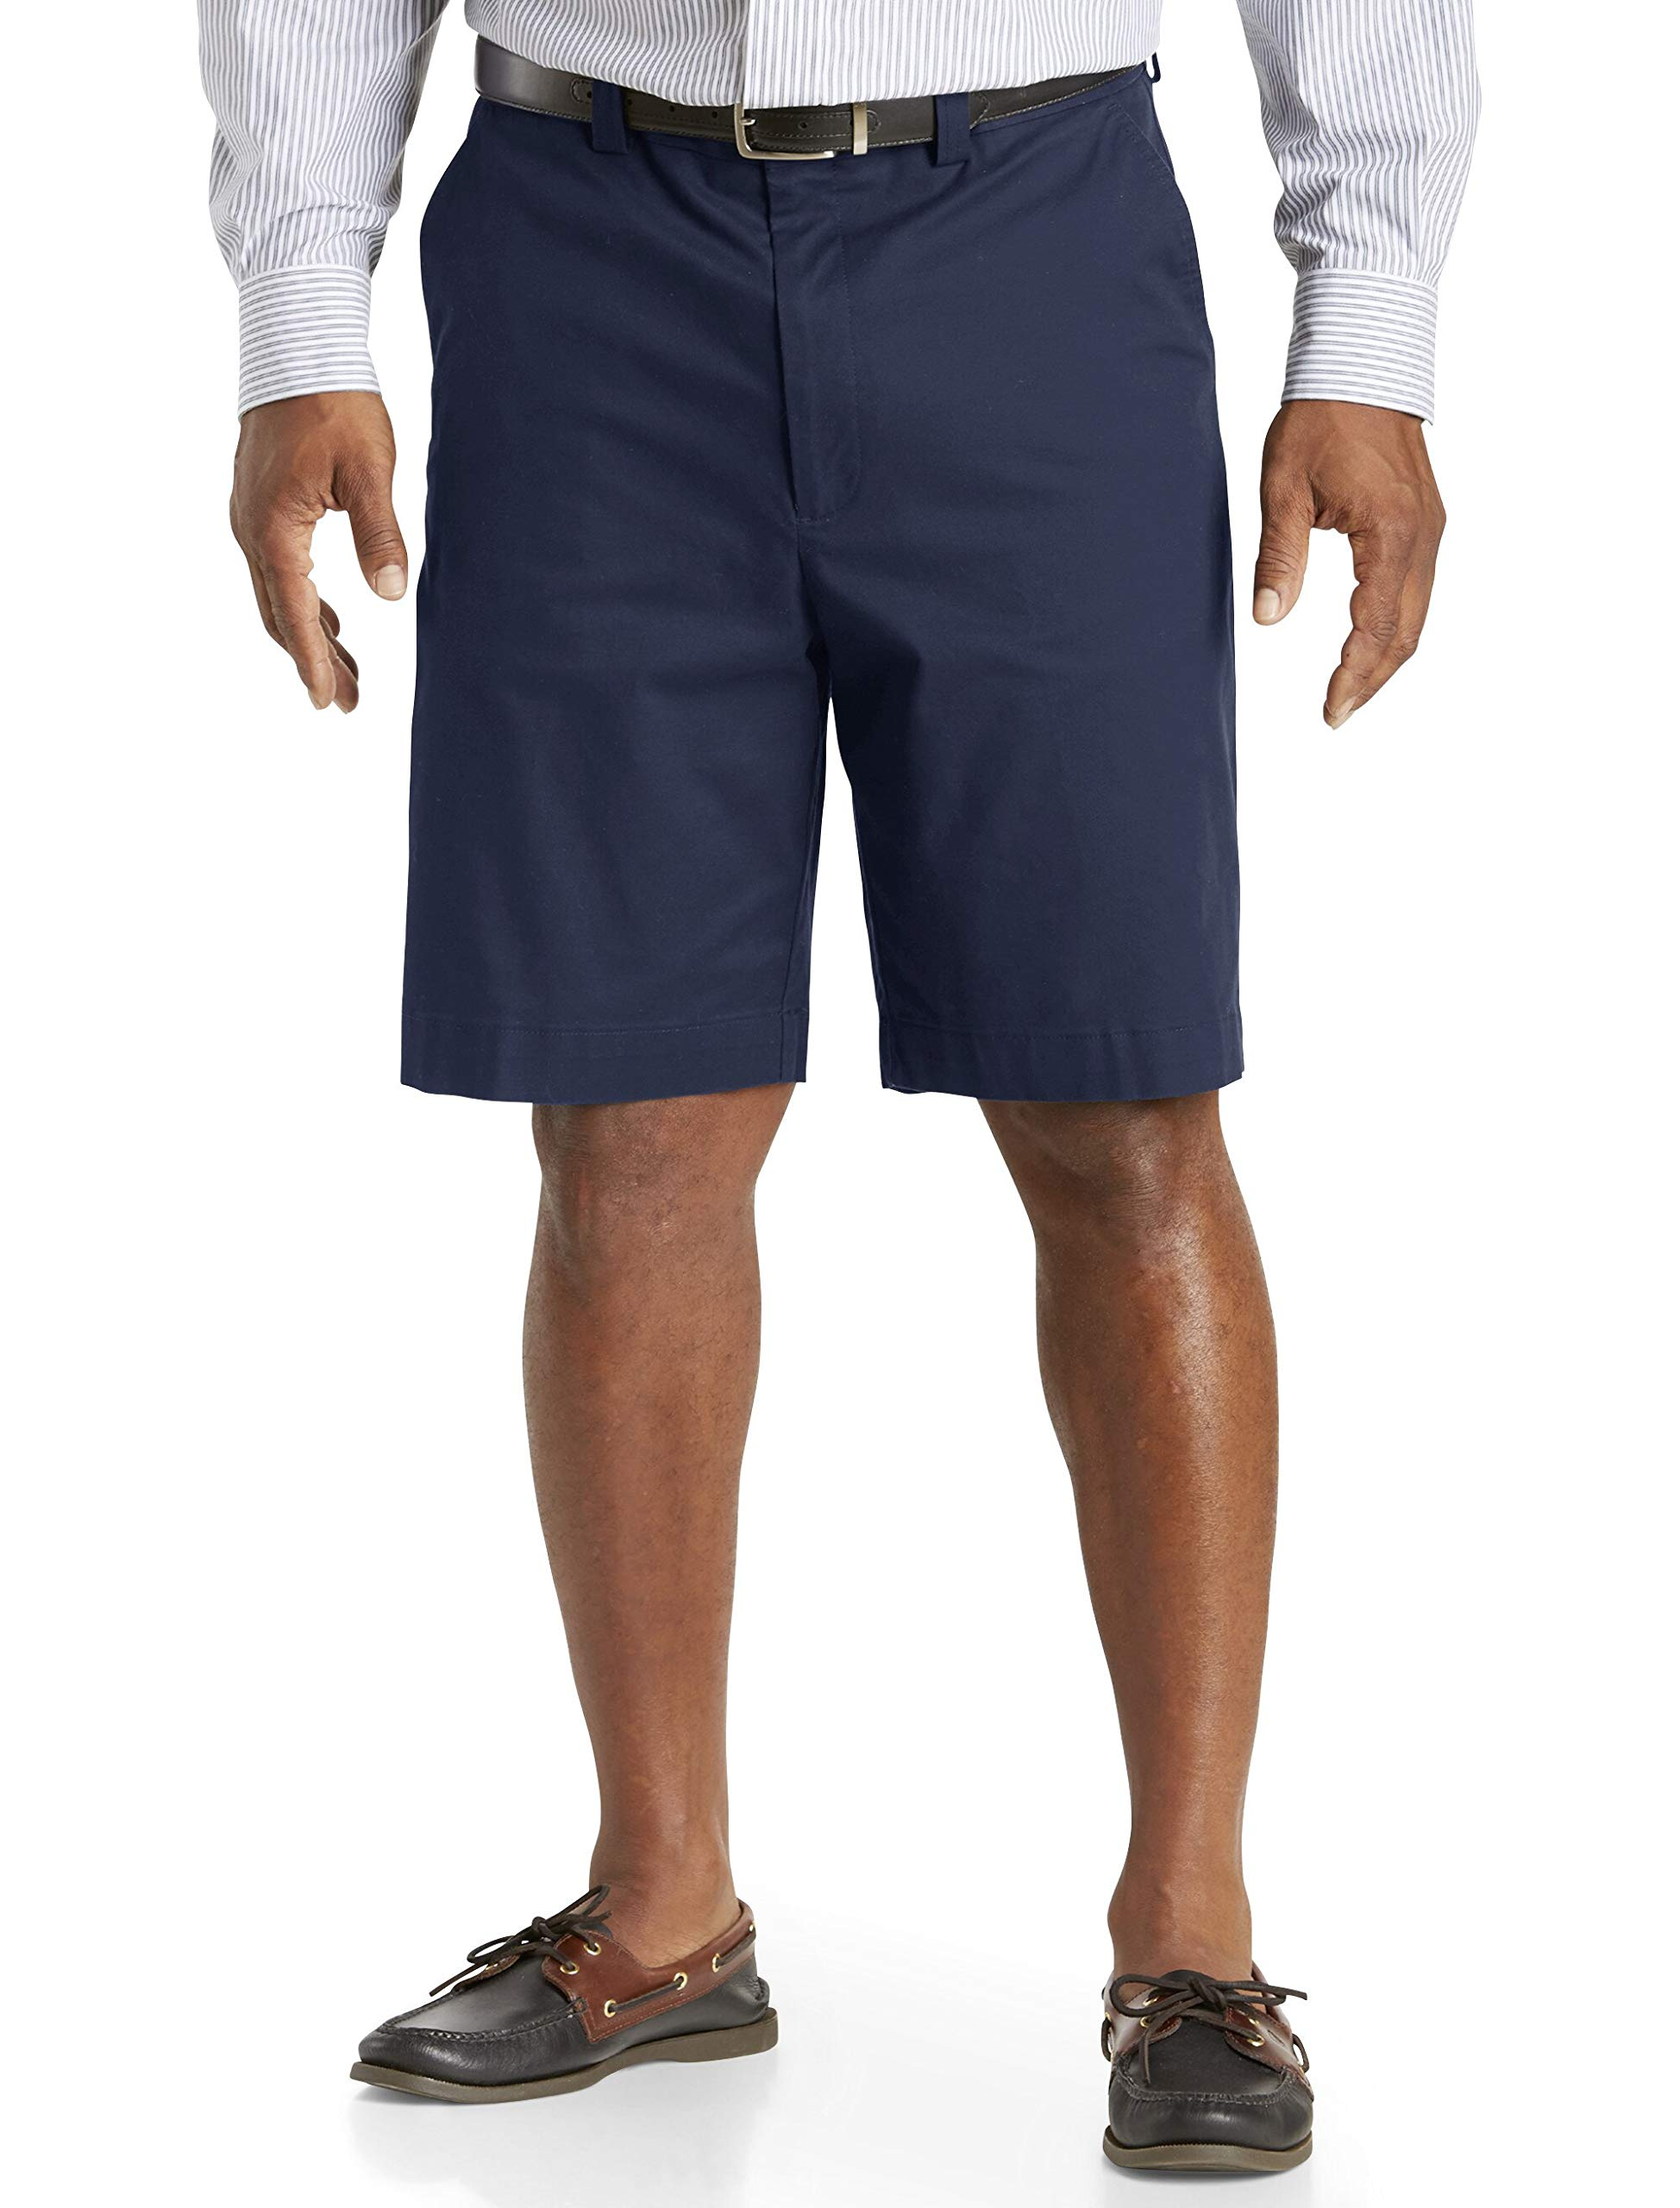 Oak Hill by DXL Big and Tall Comfort Stretch Chino Shorts, Peacoat Navy, 54